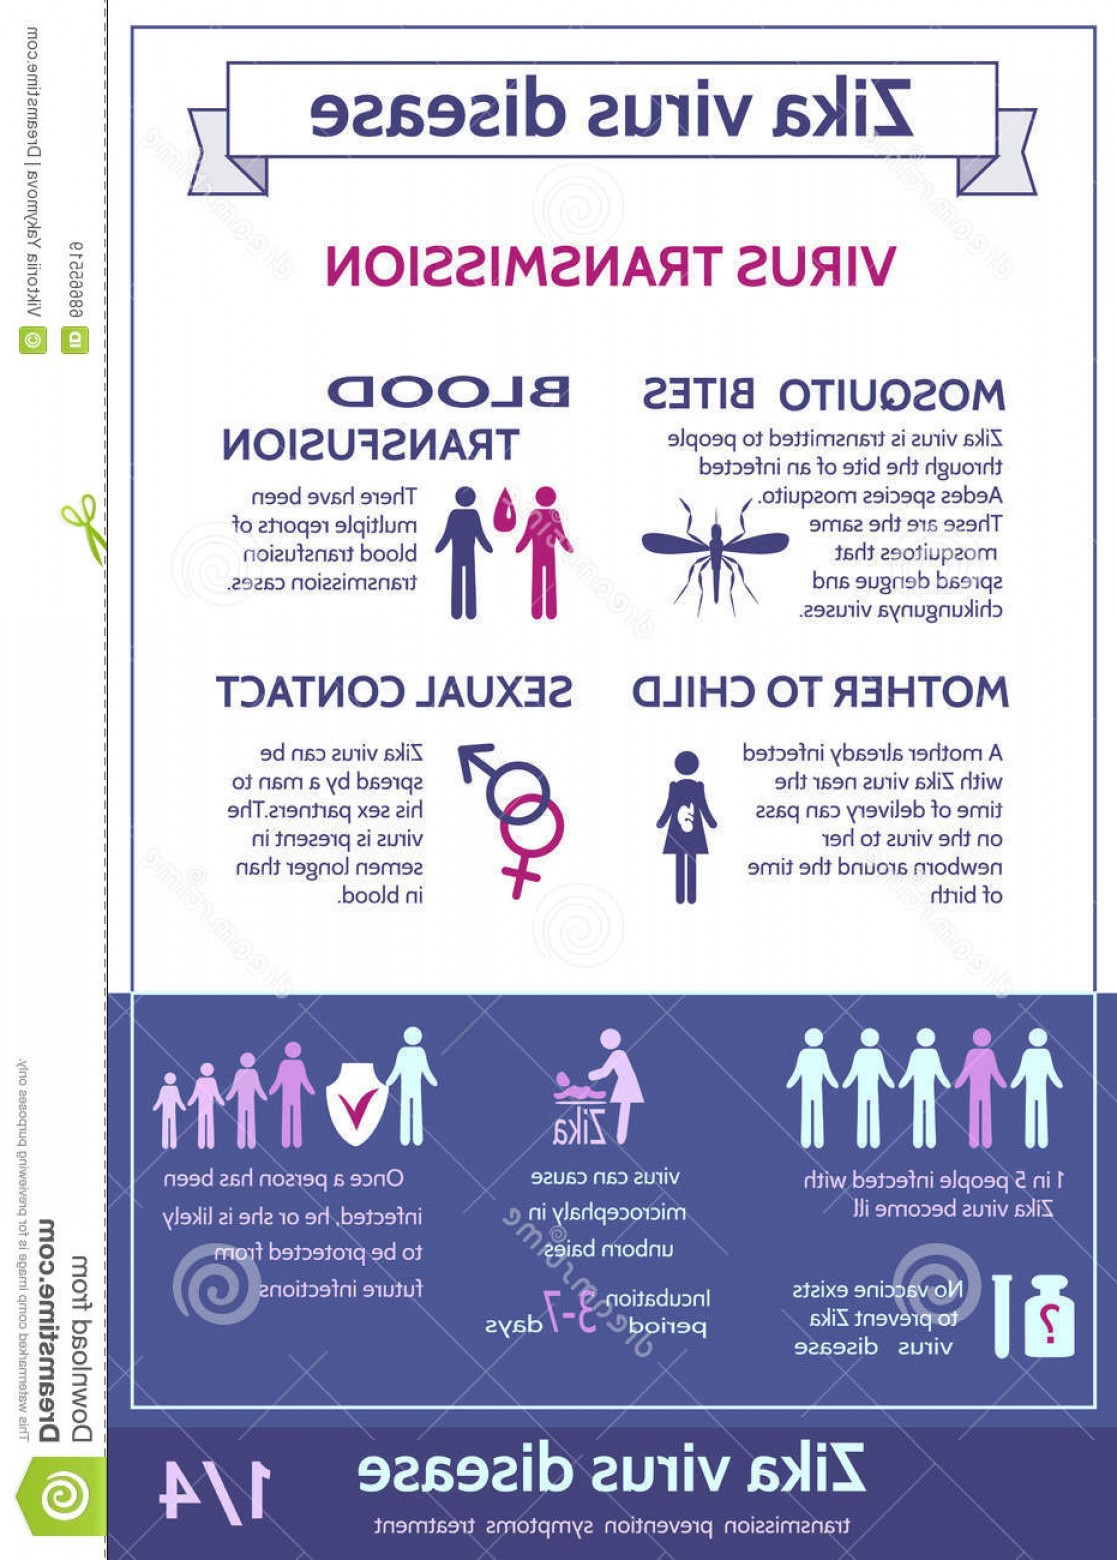 Vector -Borne Transmission Of Disease: Stock Illustration Zika Virus Infographic Icons Text Information Transmission Illness Health Care Concept Brochure Poster Banner Image